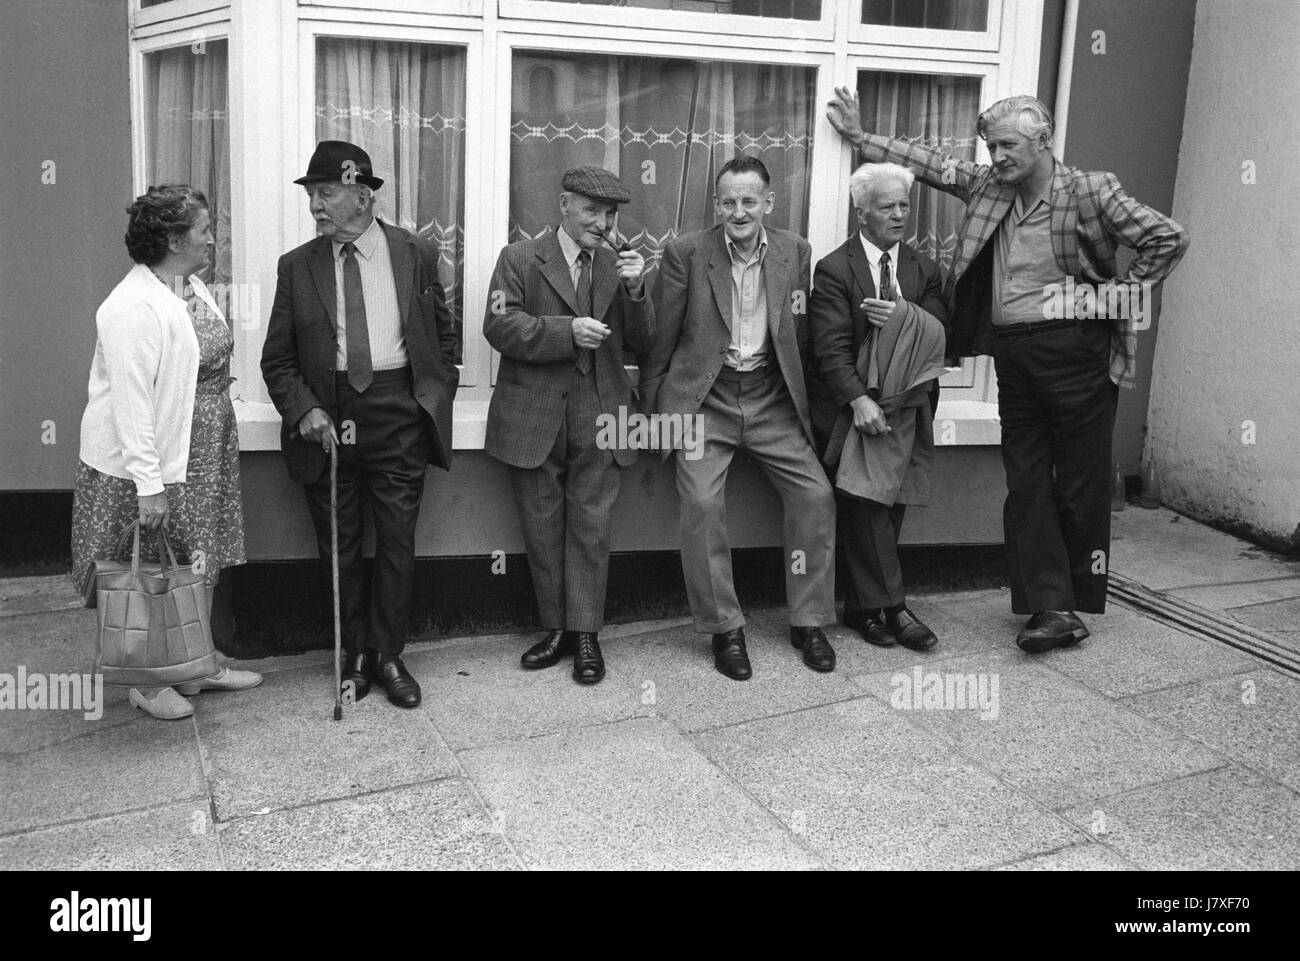 Group of men friends friendship village life uk 1970s holsworthy devon england 1975 men at the pretty maid of holsworthy annual folklore country custom